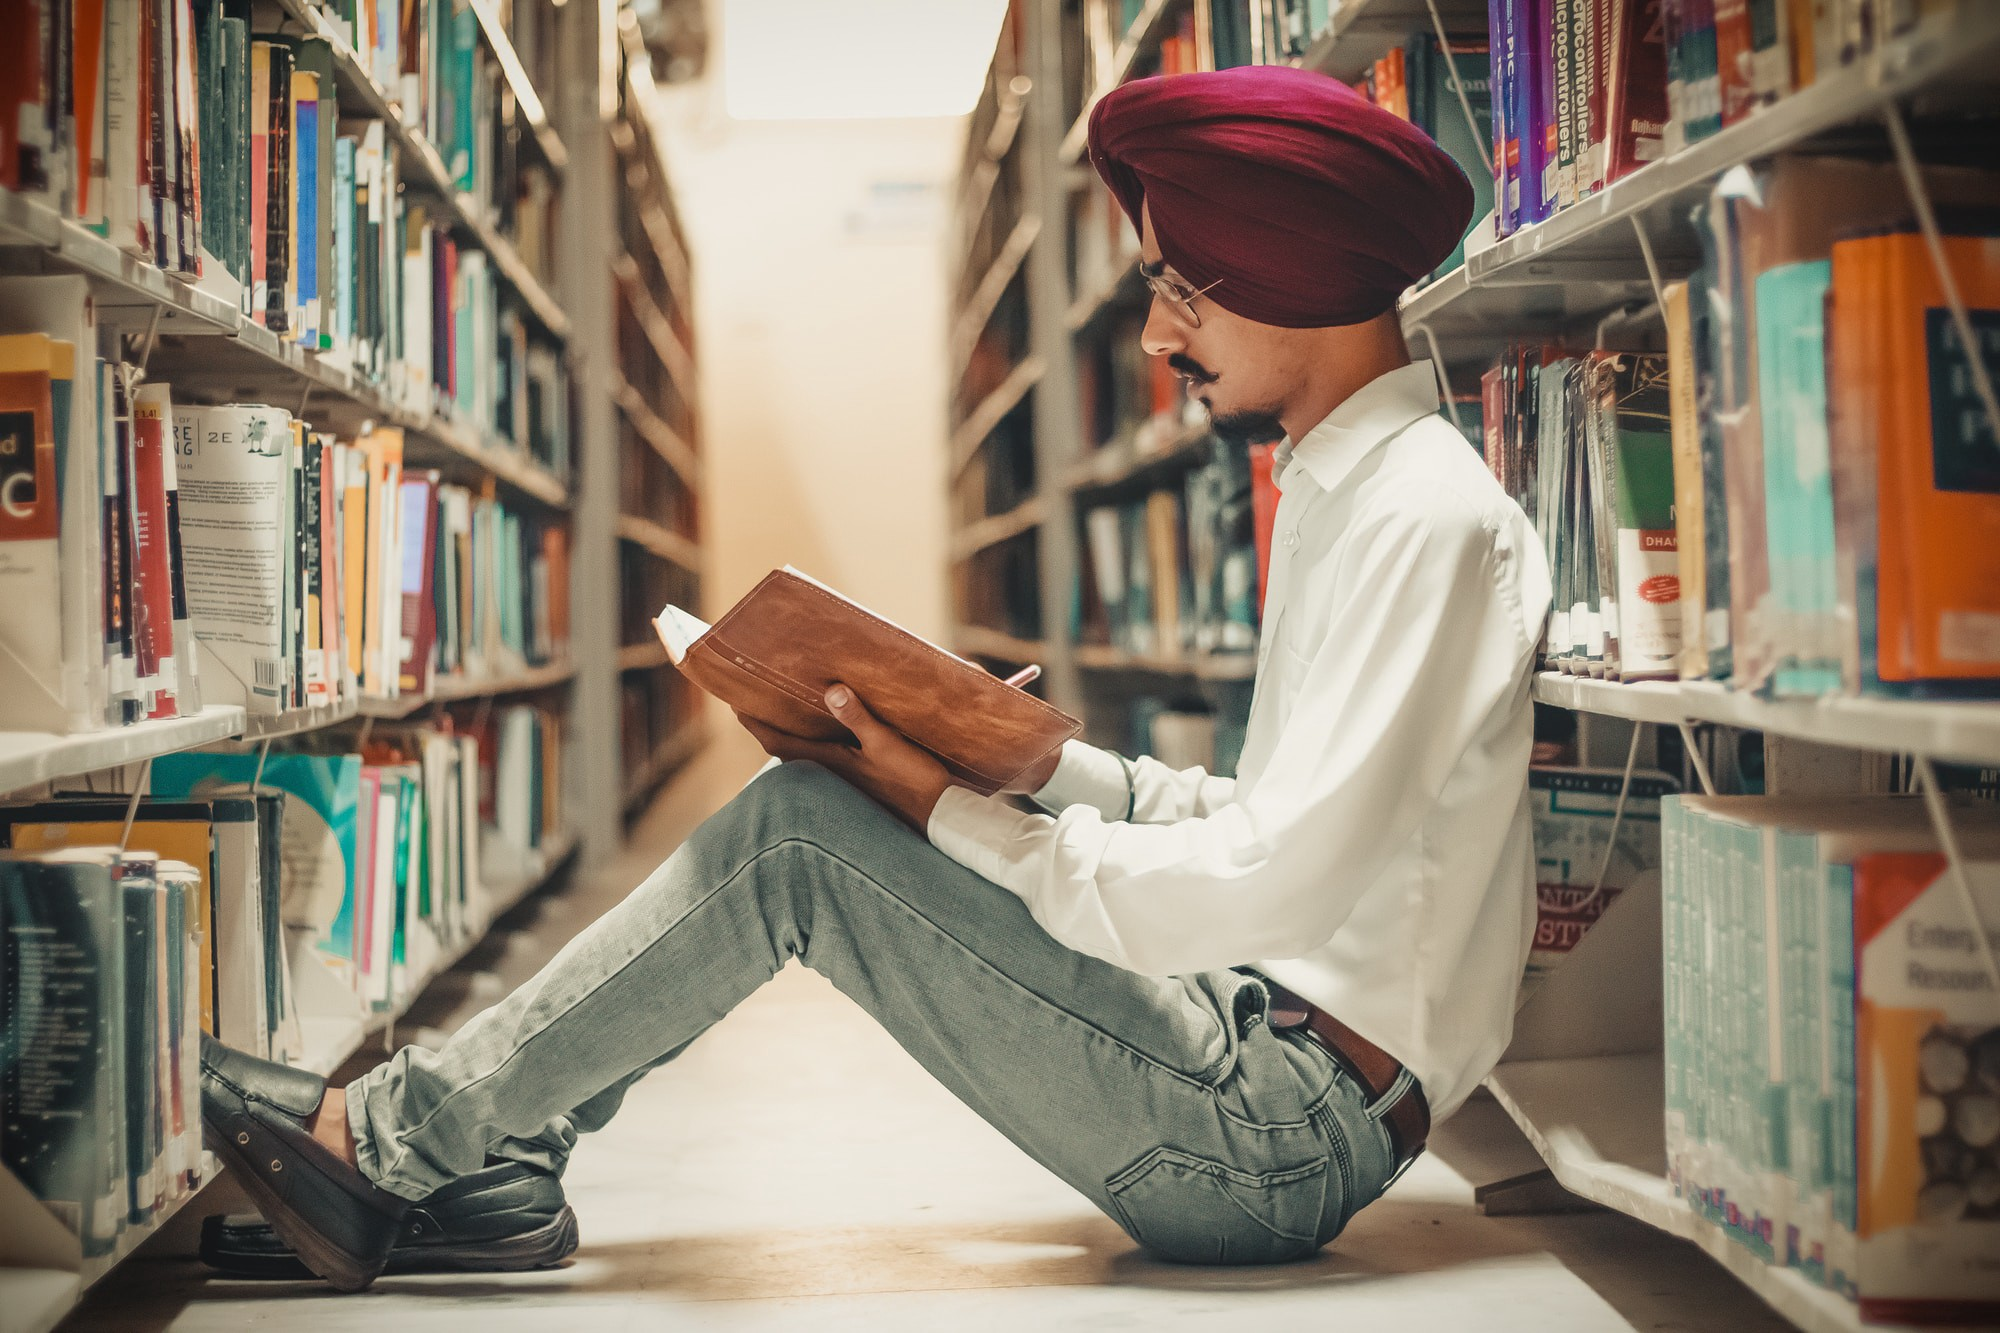 Managing College Stress: Young man wearing turban studying while seated in a library aisle